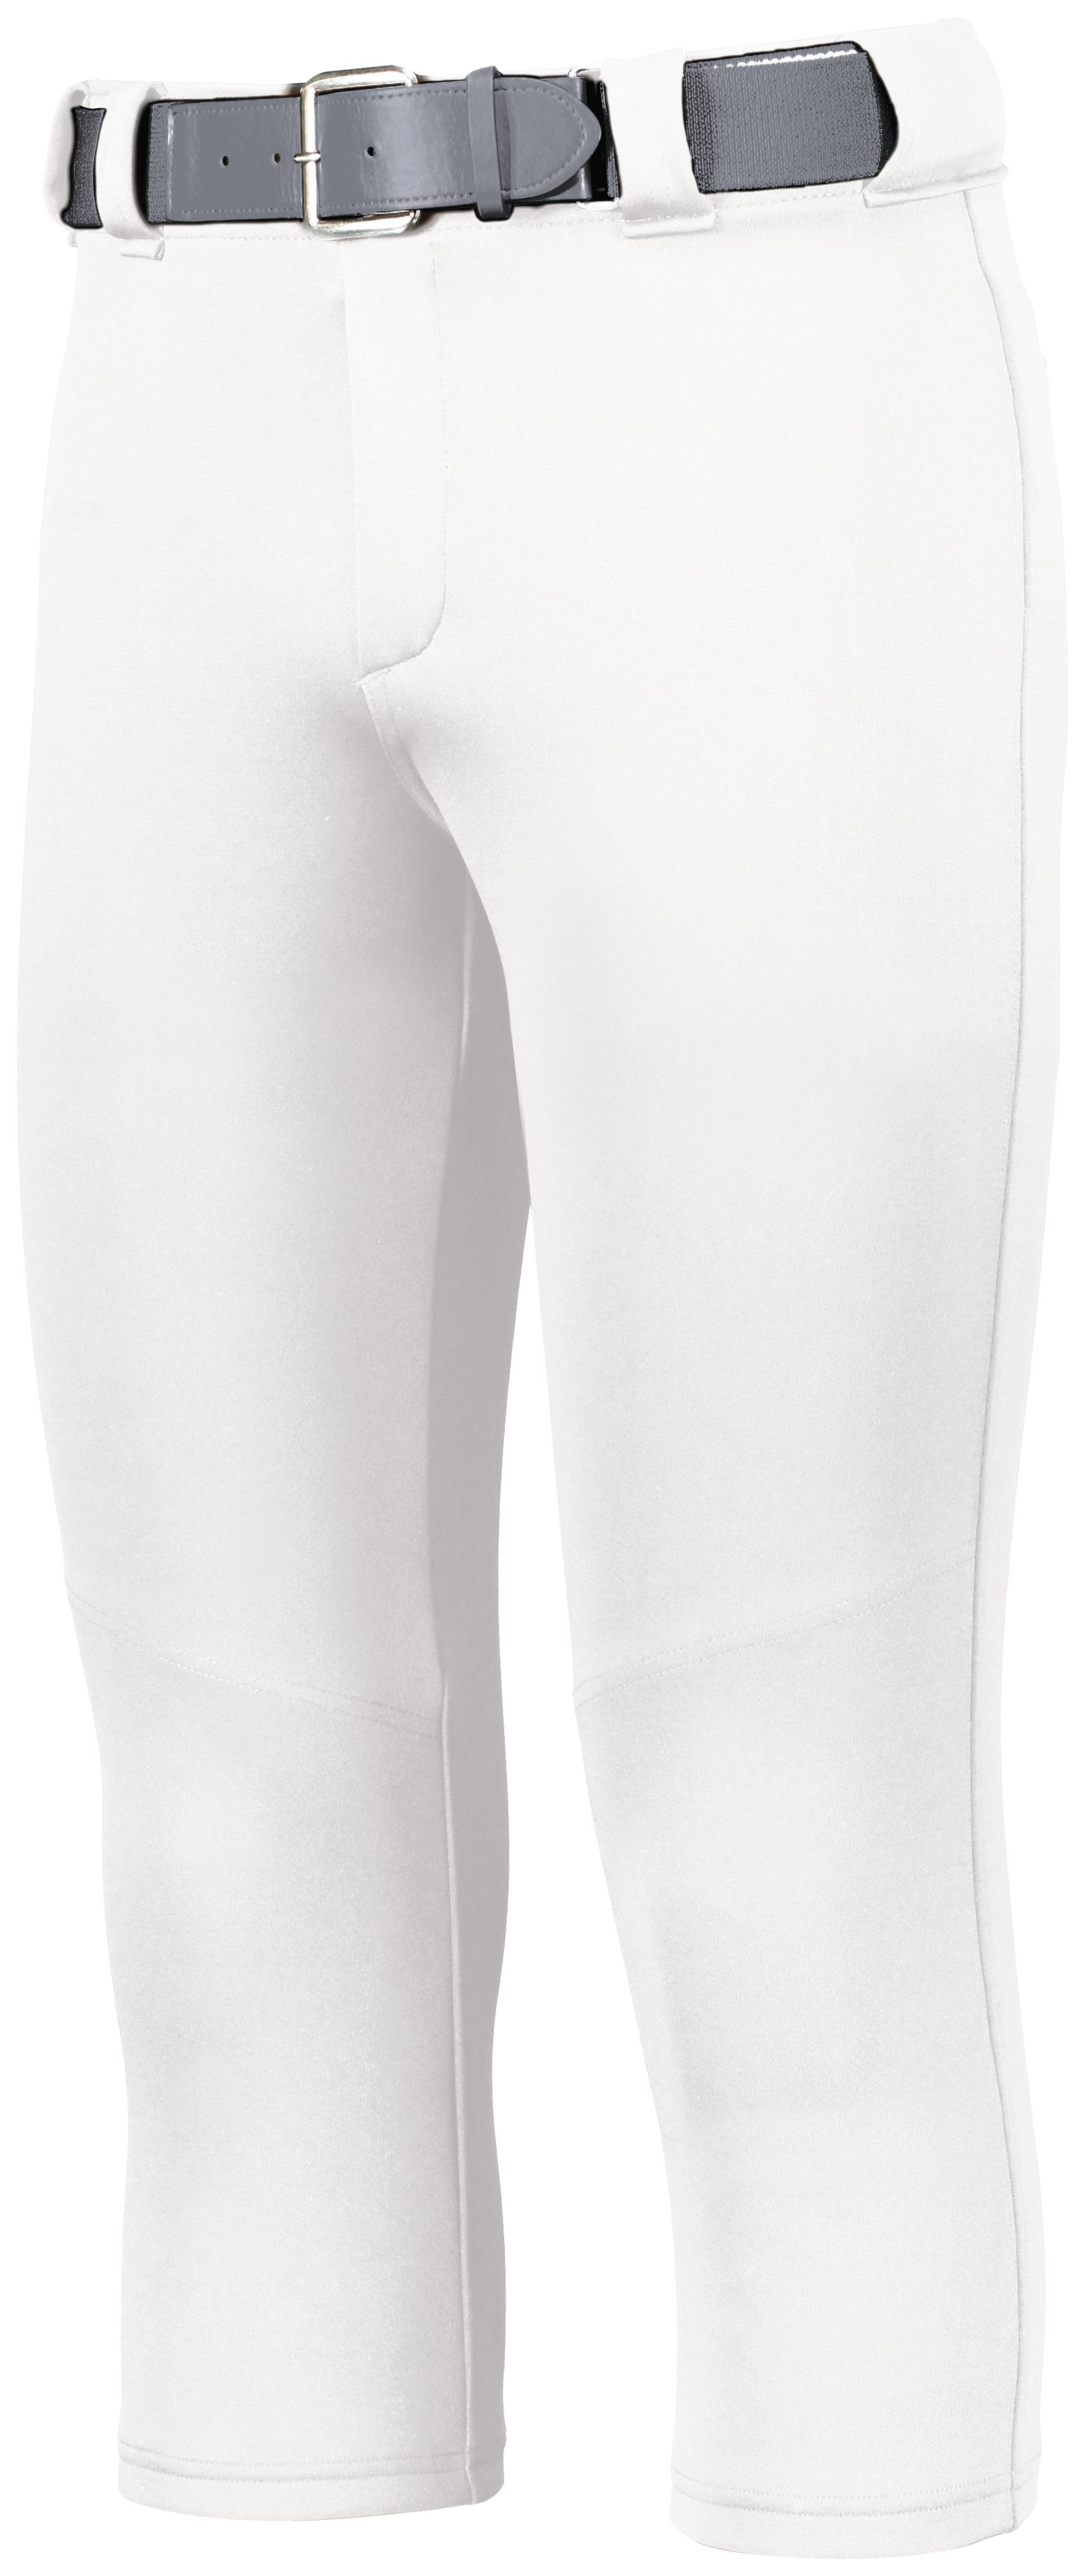 Ladies Slideflex Softball Pant - White